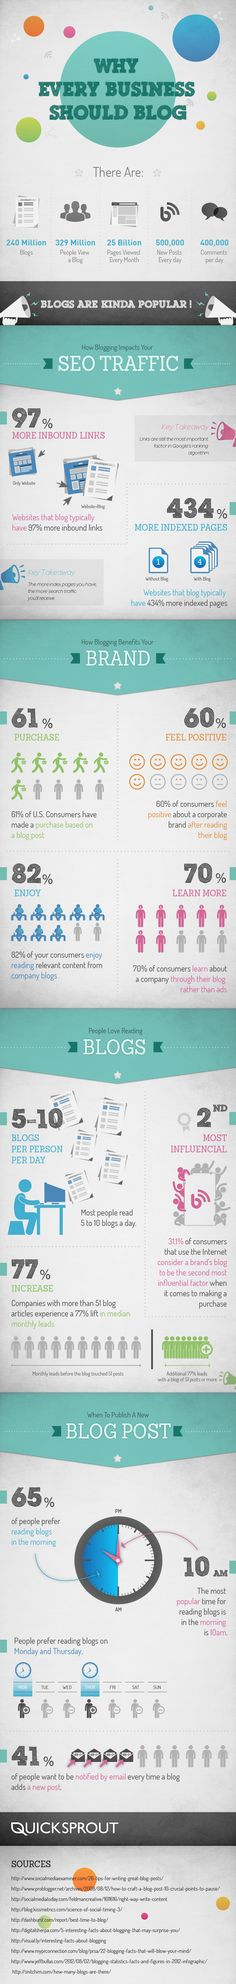 Why Every Business Should Blog. Infographic  via @quicksprout #business #blogging